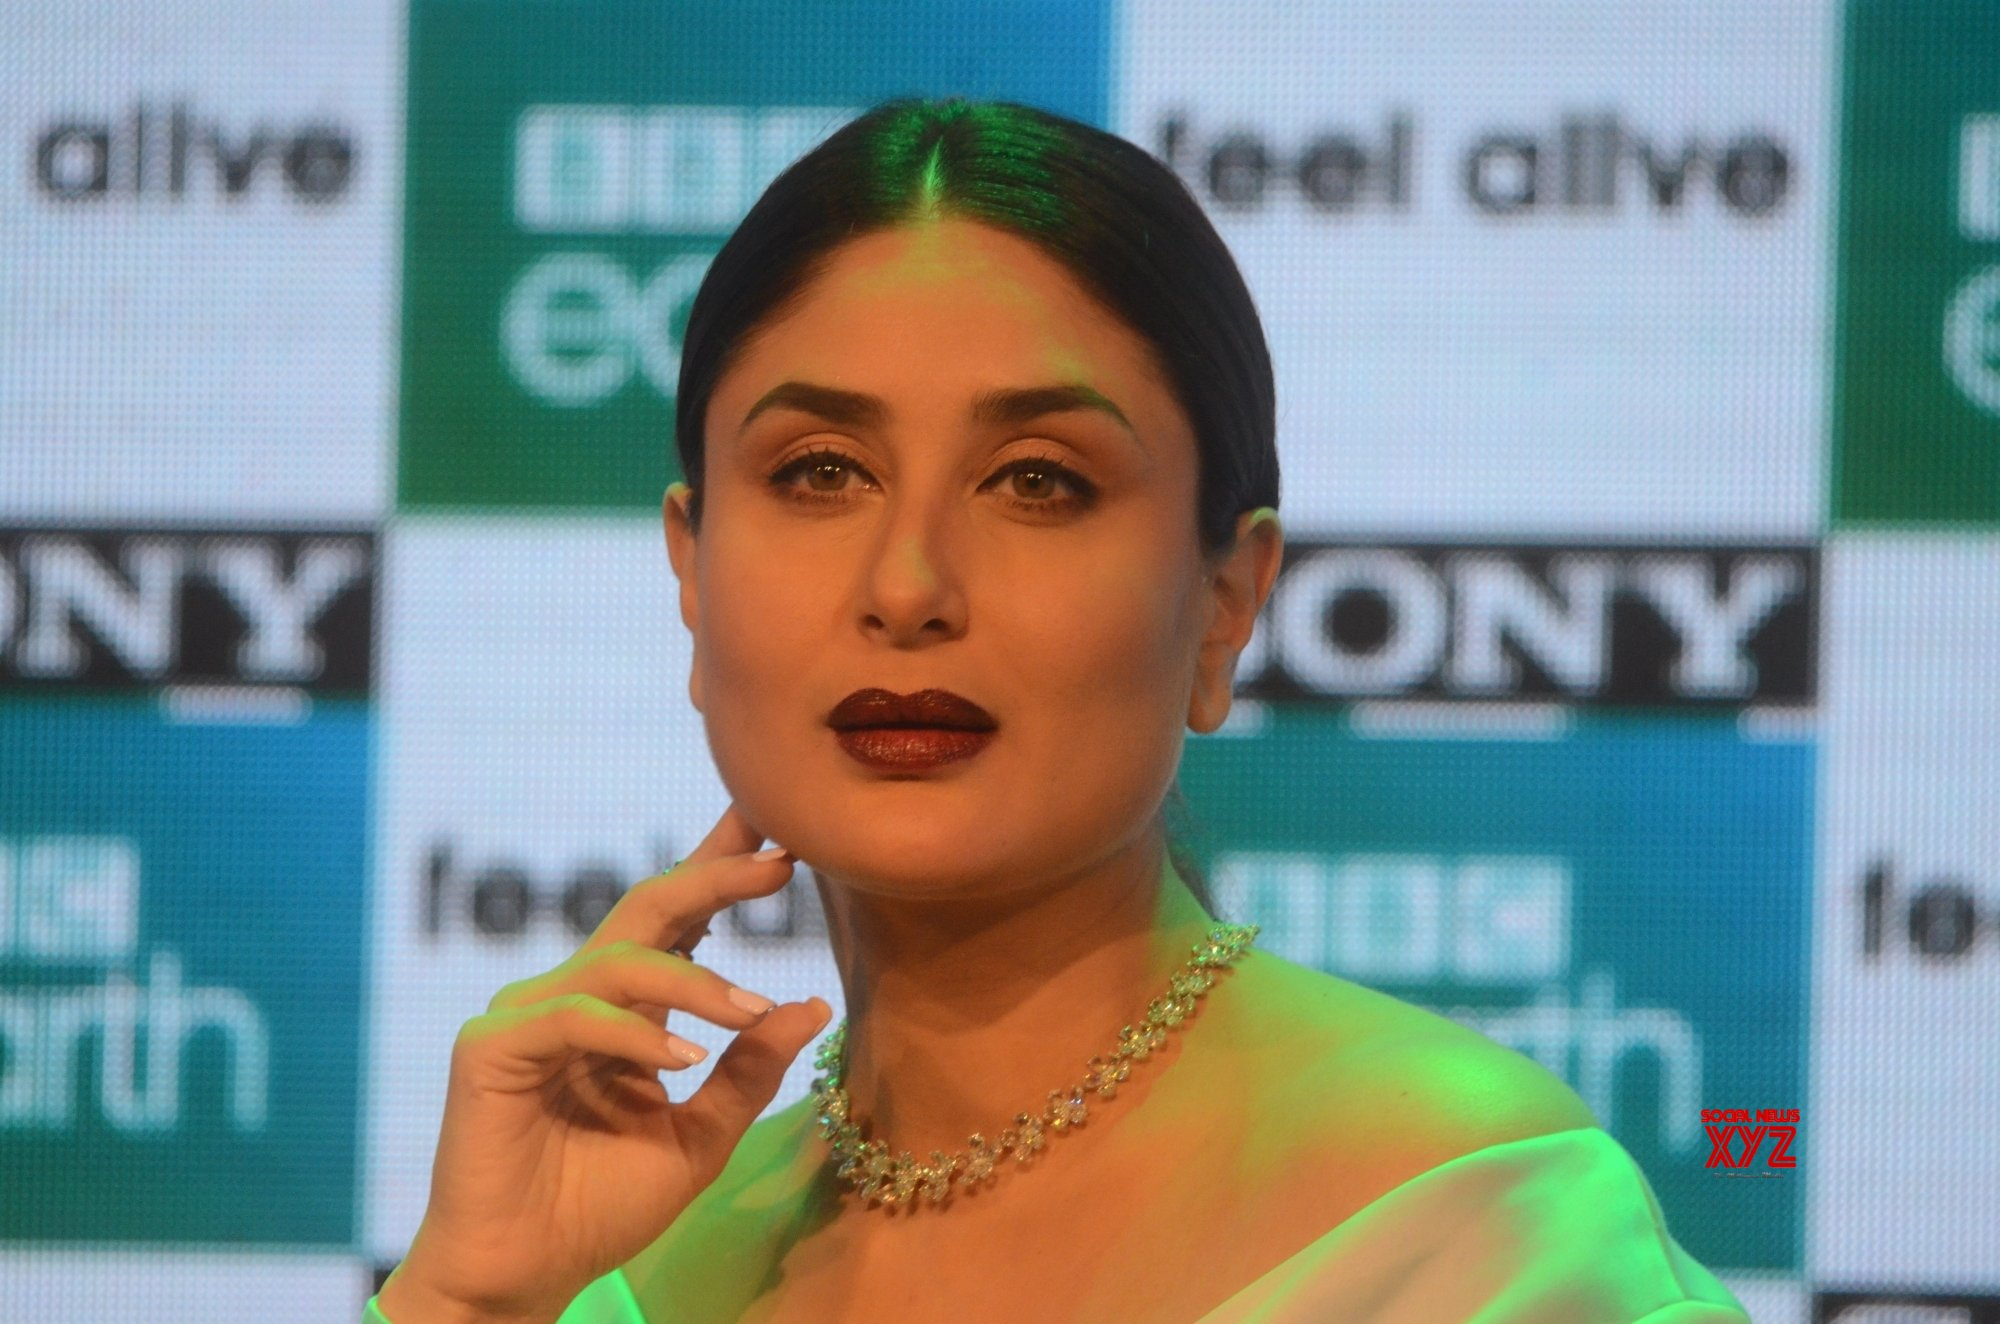 Kareena completes 20 years in Bollywood, shares memories of first film